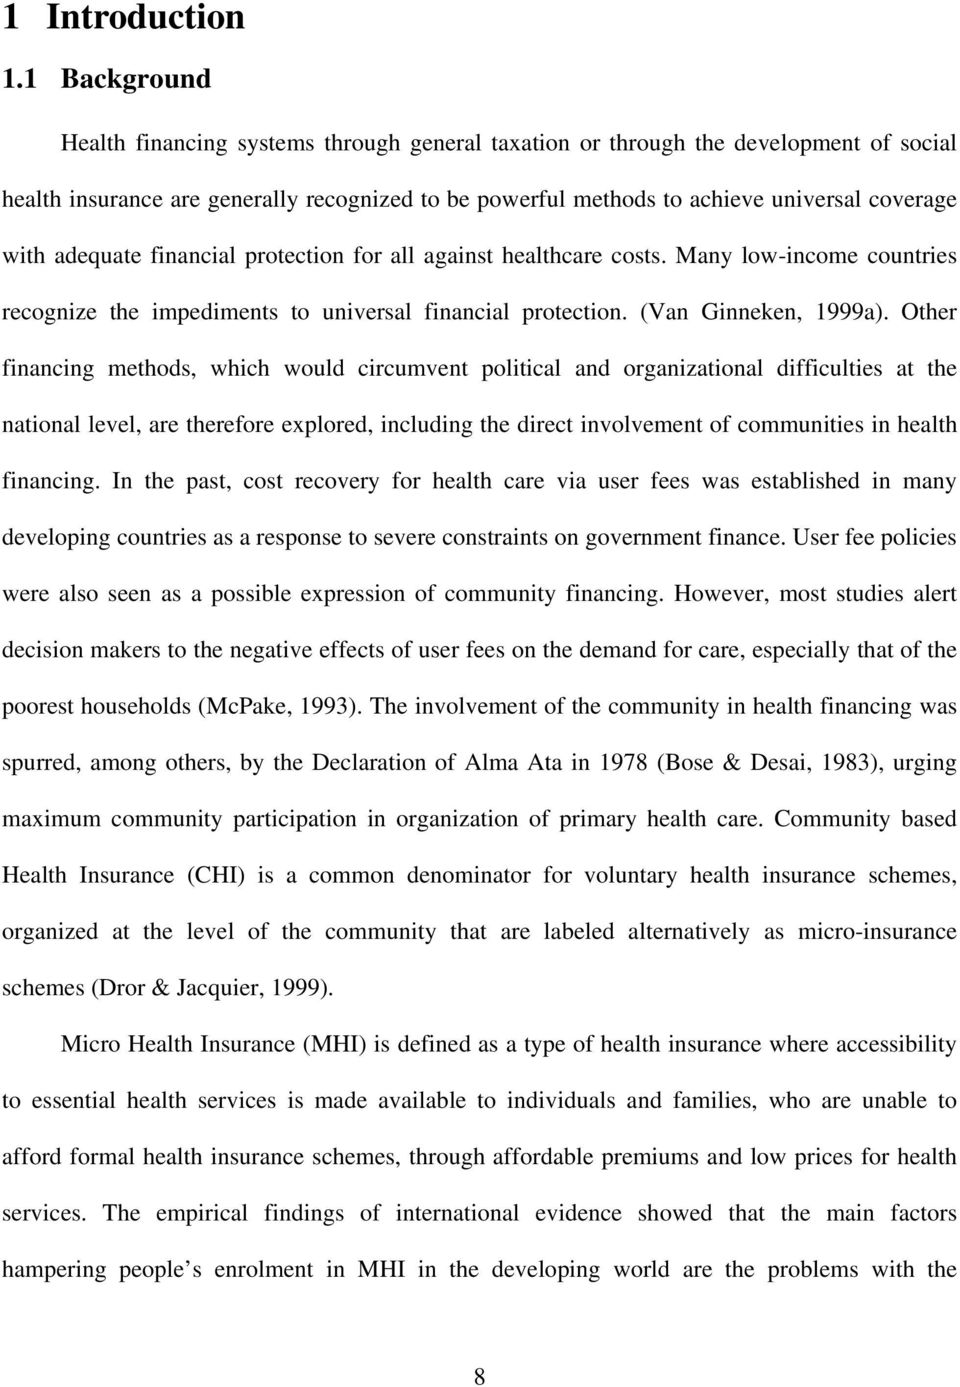 adequate financial protection for all against healthcare costs. Many low-income countries recognize the impediments to universal financial protection. (Van Ginneken, 1999a).